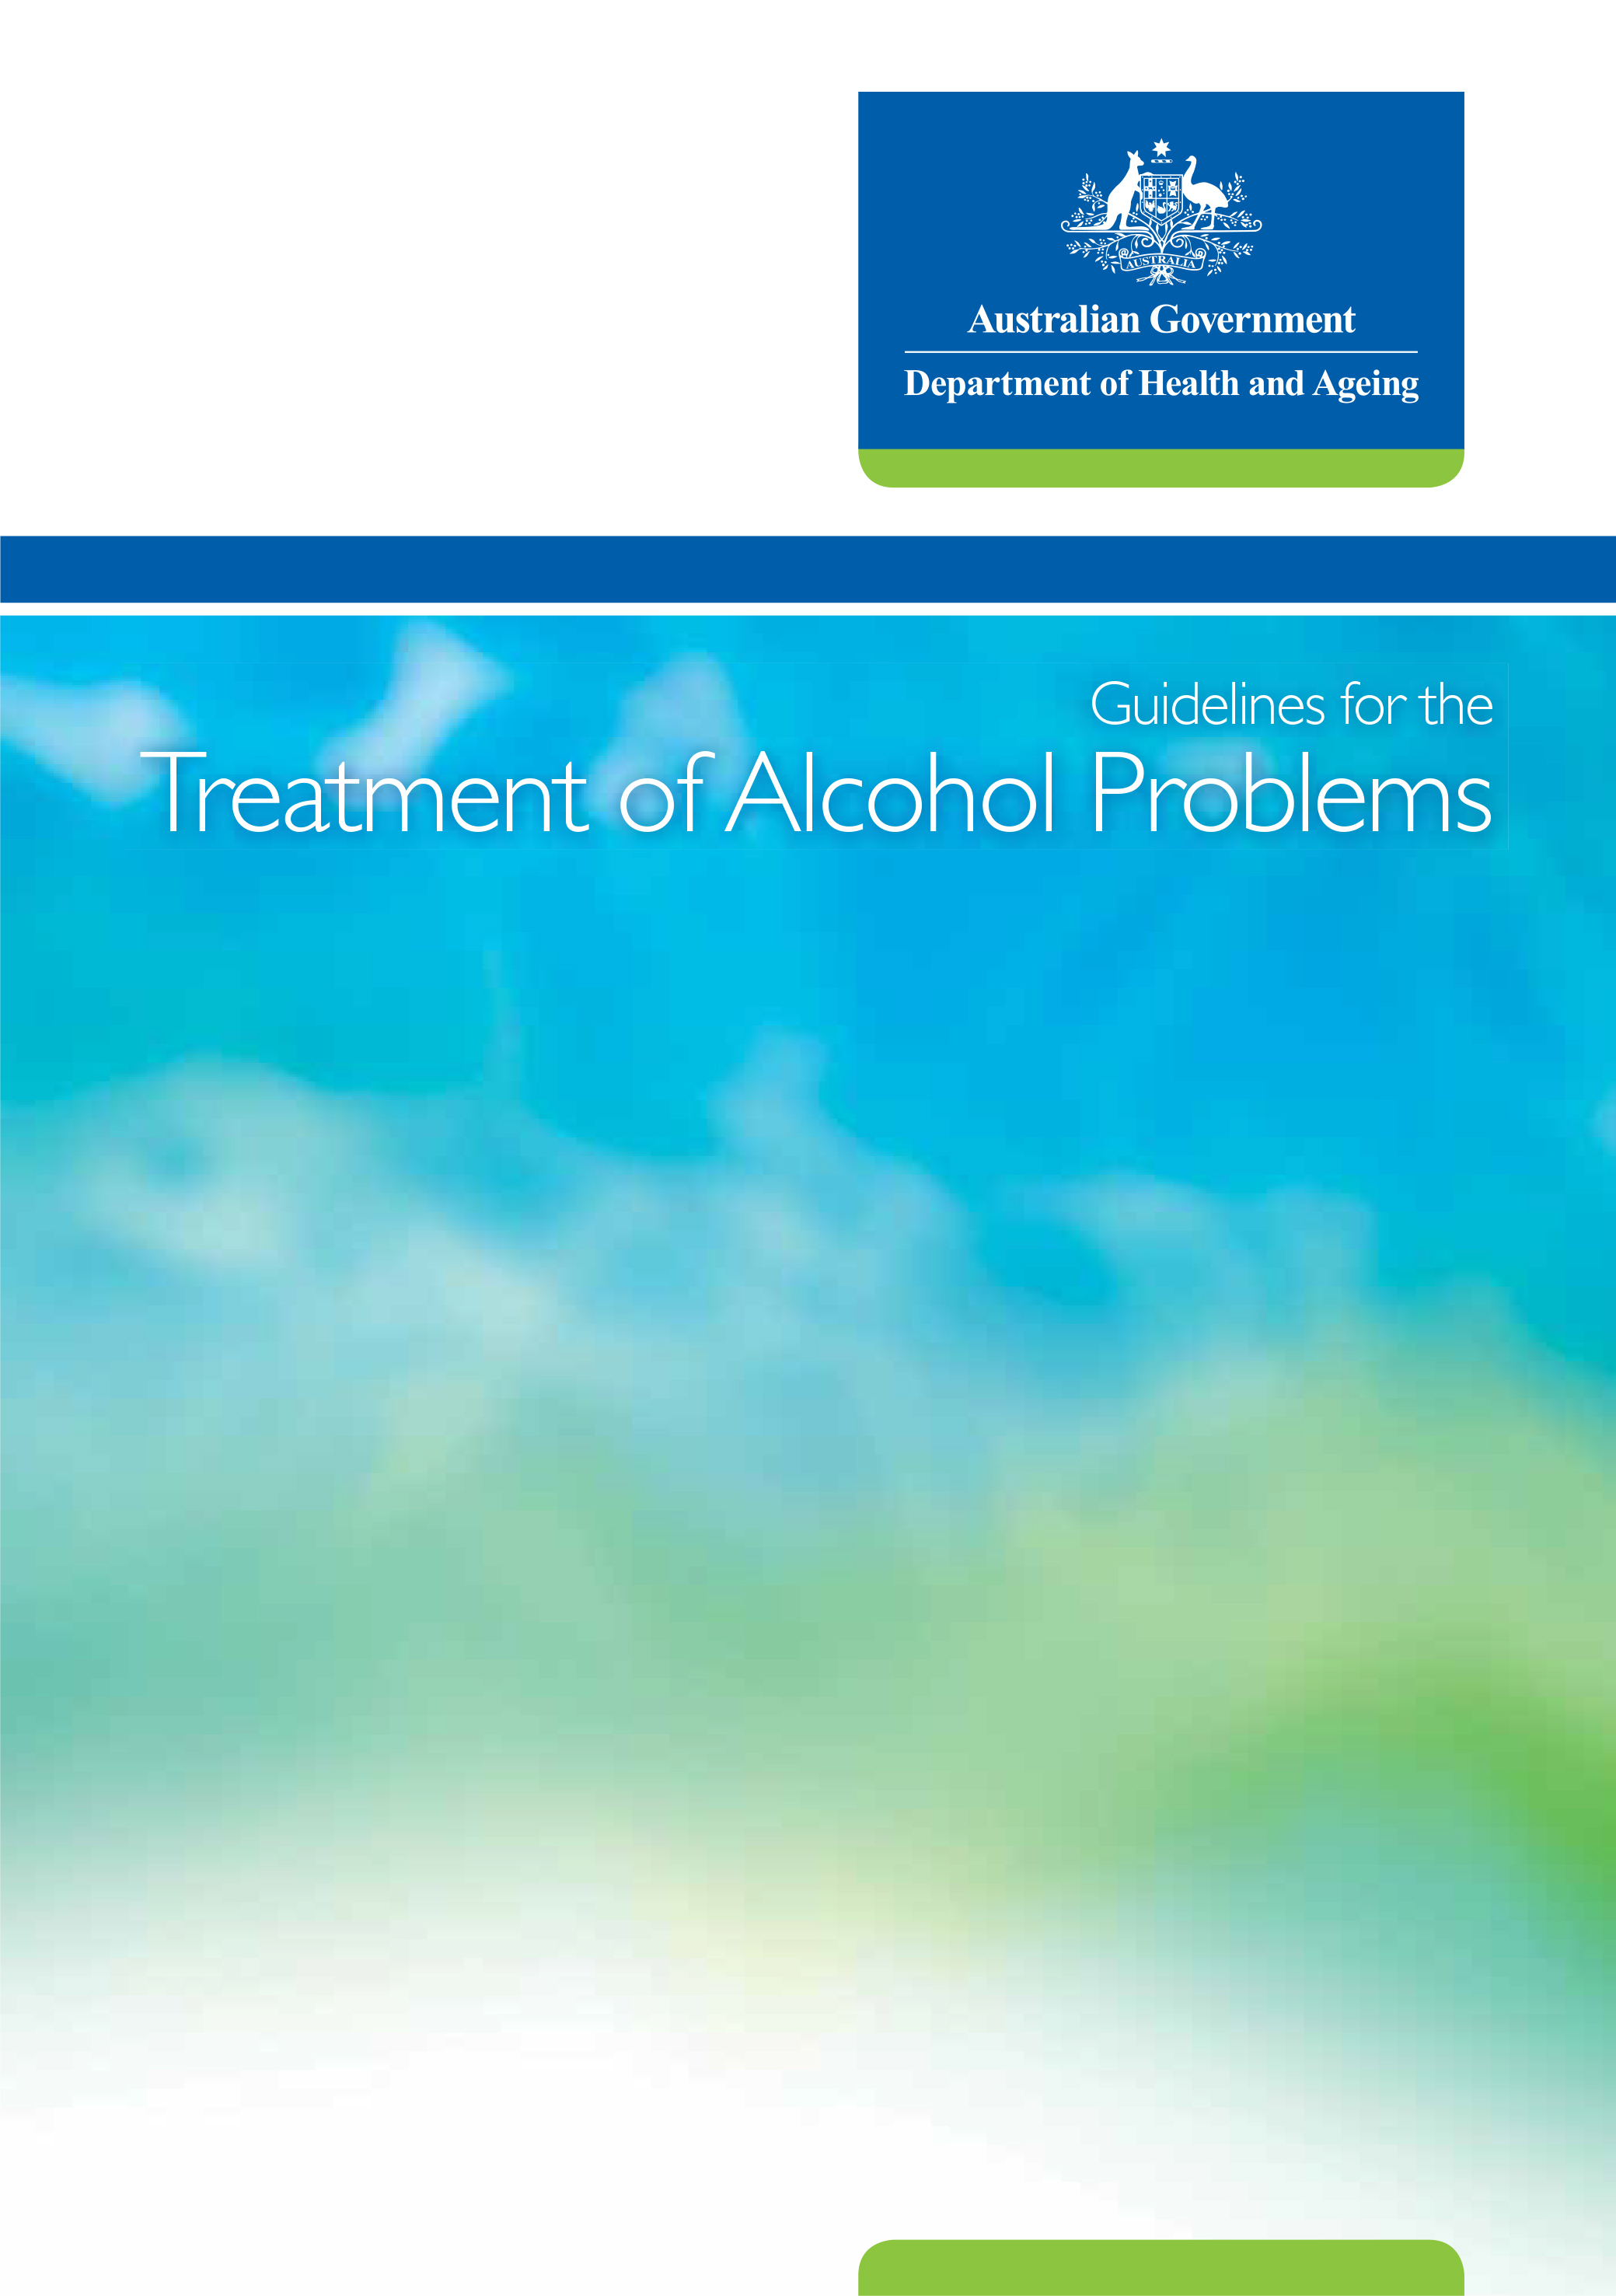 Alcohol: Guidelines for the Treatment of Alcohol Problems - DOHA (2009)